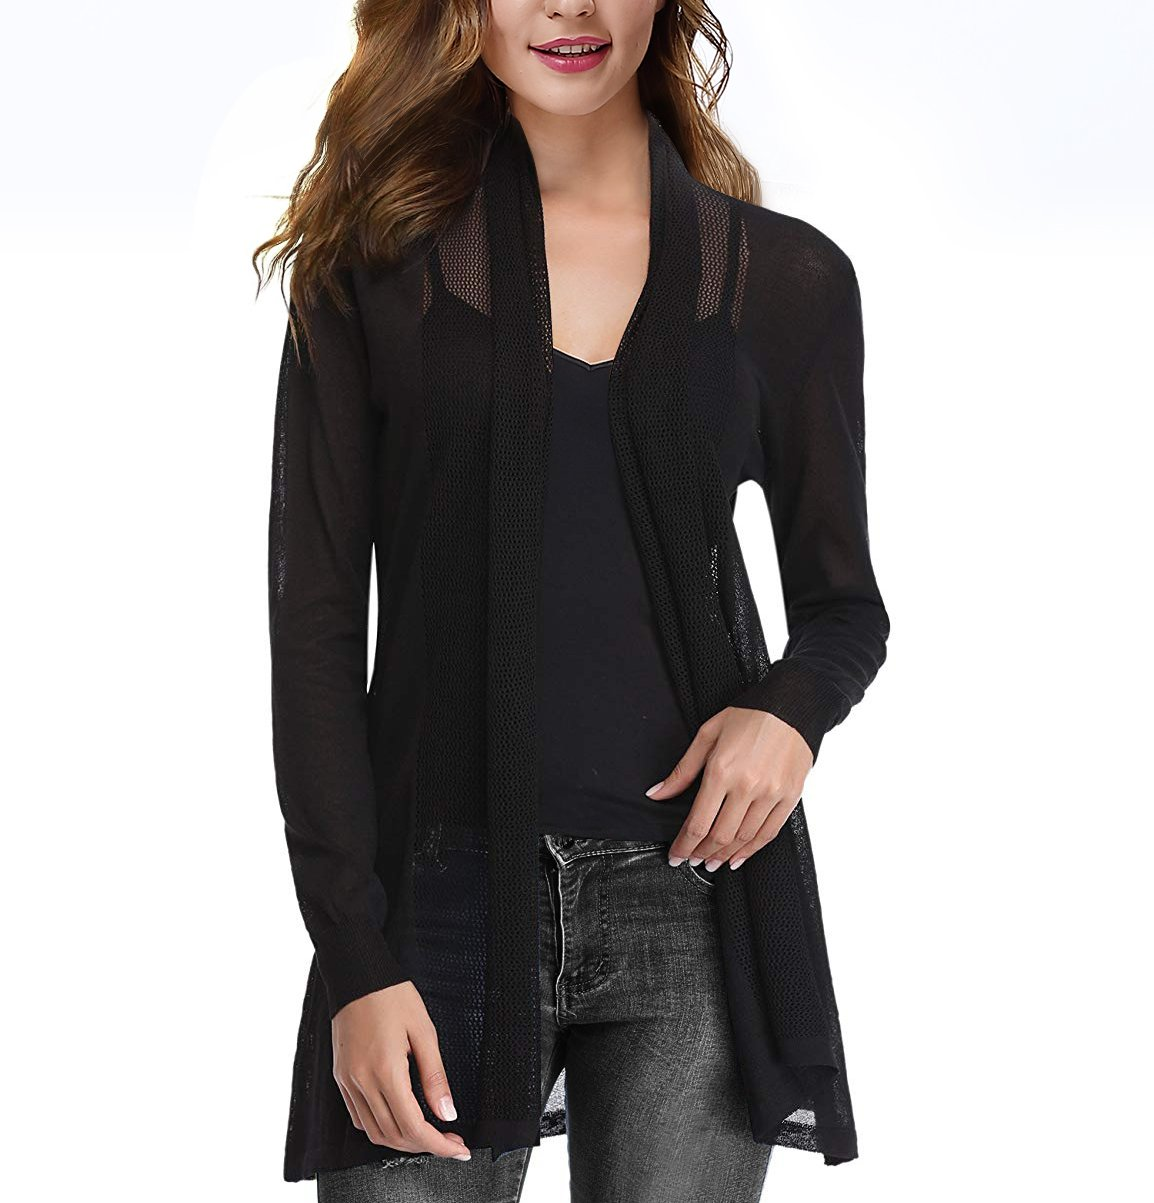 CJ Womens Casual Long Sleeve Open Front Cardigan Sweater